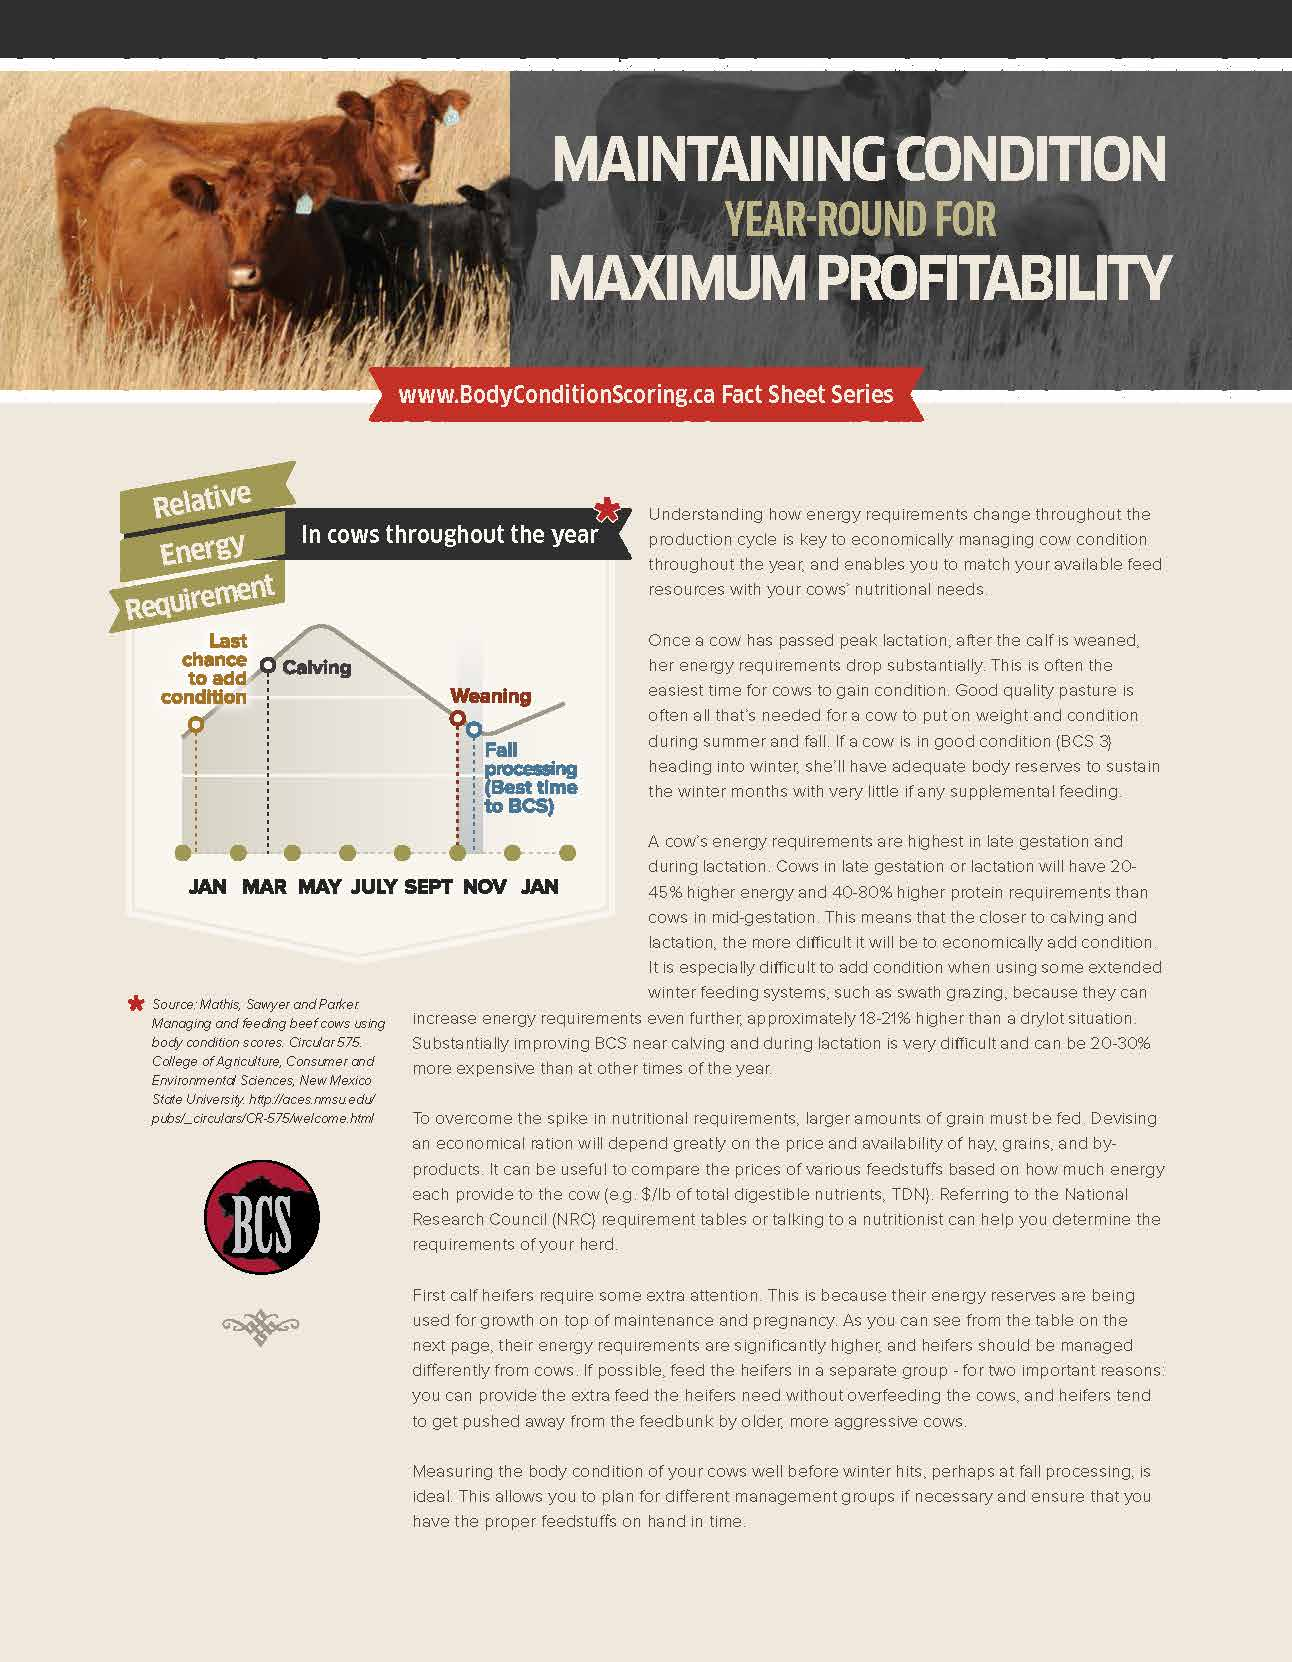 Fact sheet: Maintain Condition Year-Round for Maximum Profitability